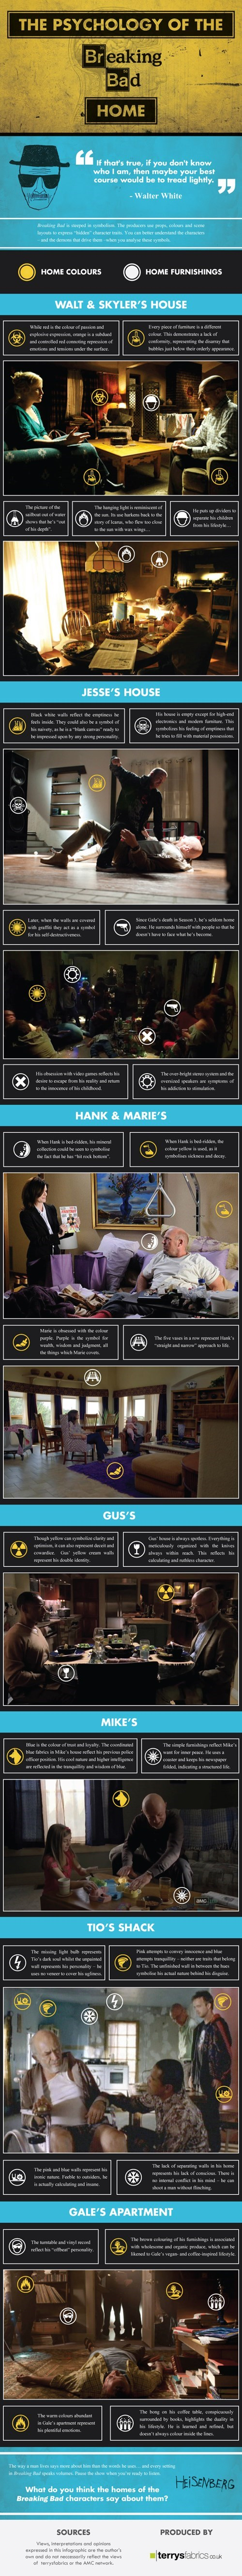 The Psychology of the Breaking Bad Home Infographic